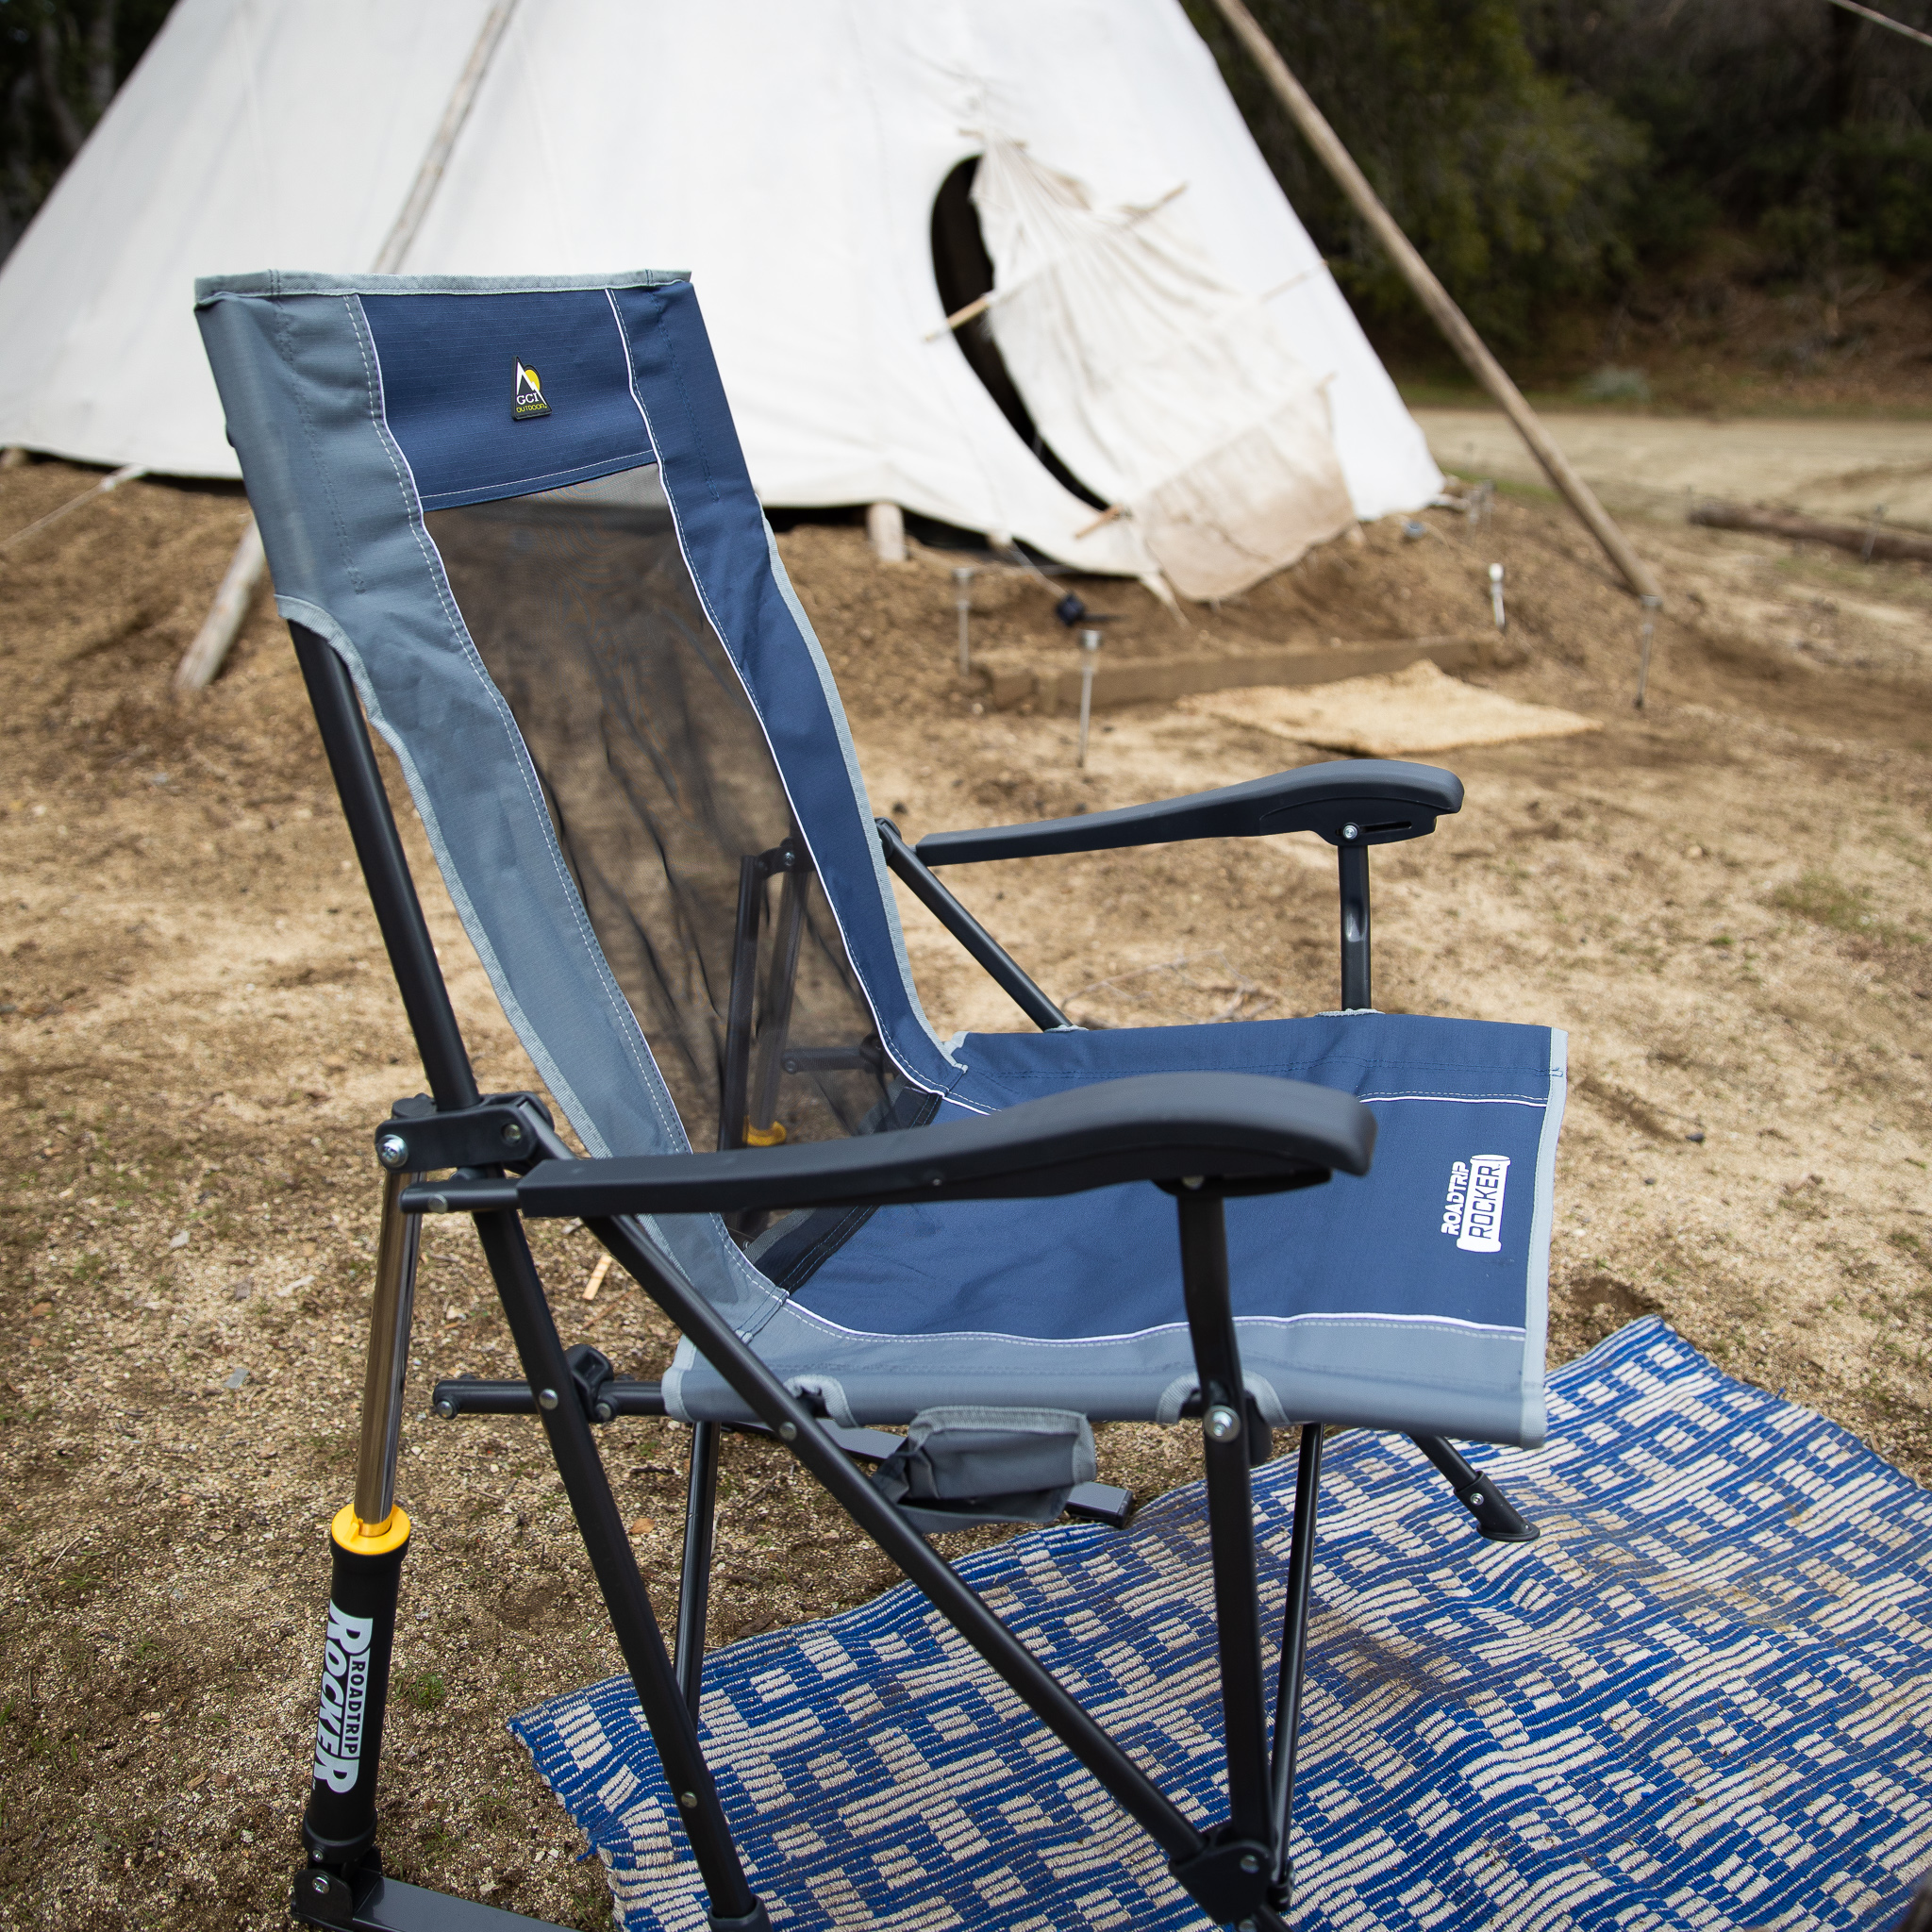 5 Tips For Your First Night Teepee Camping - 50 Campfires